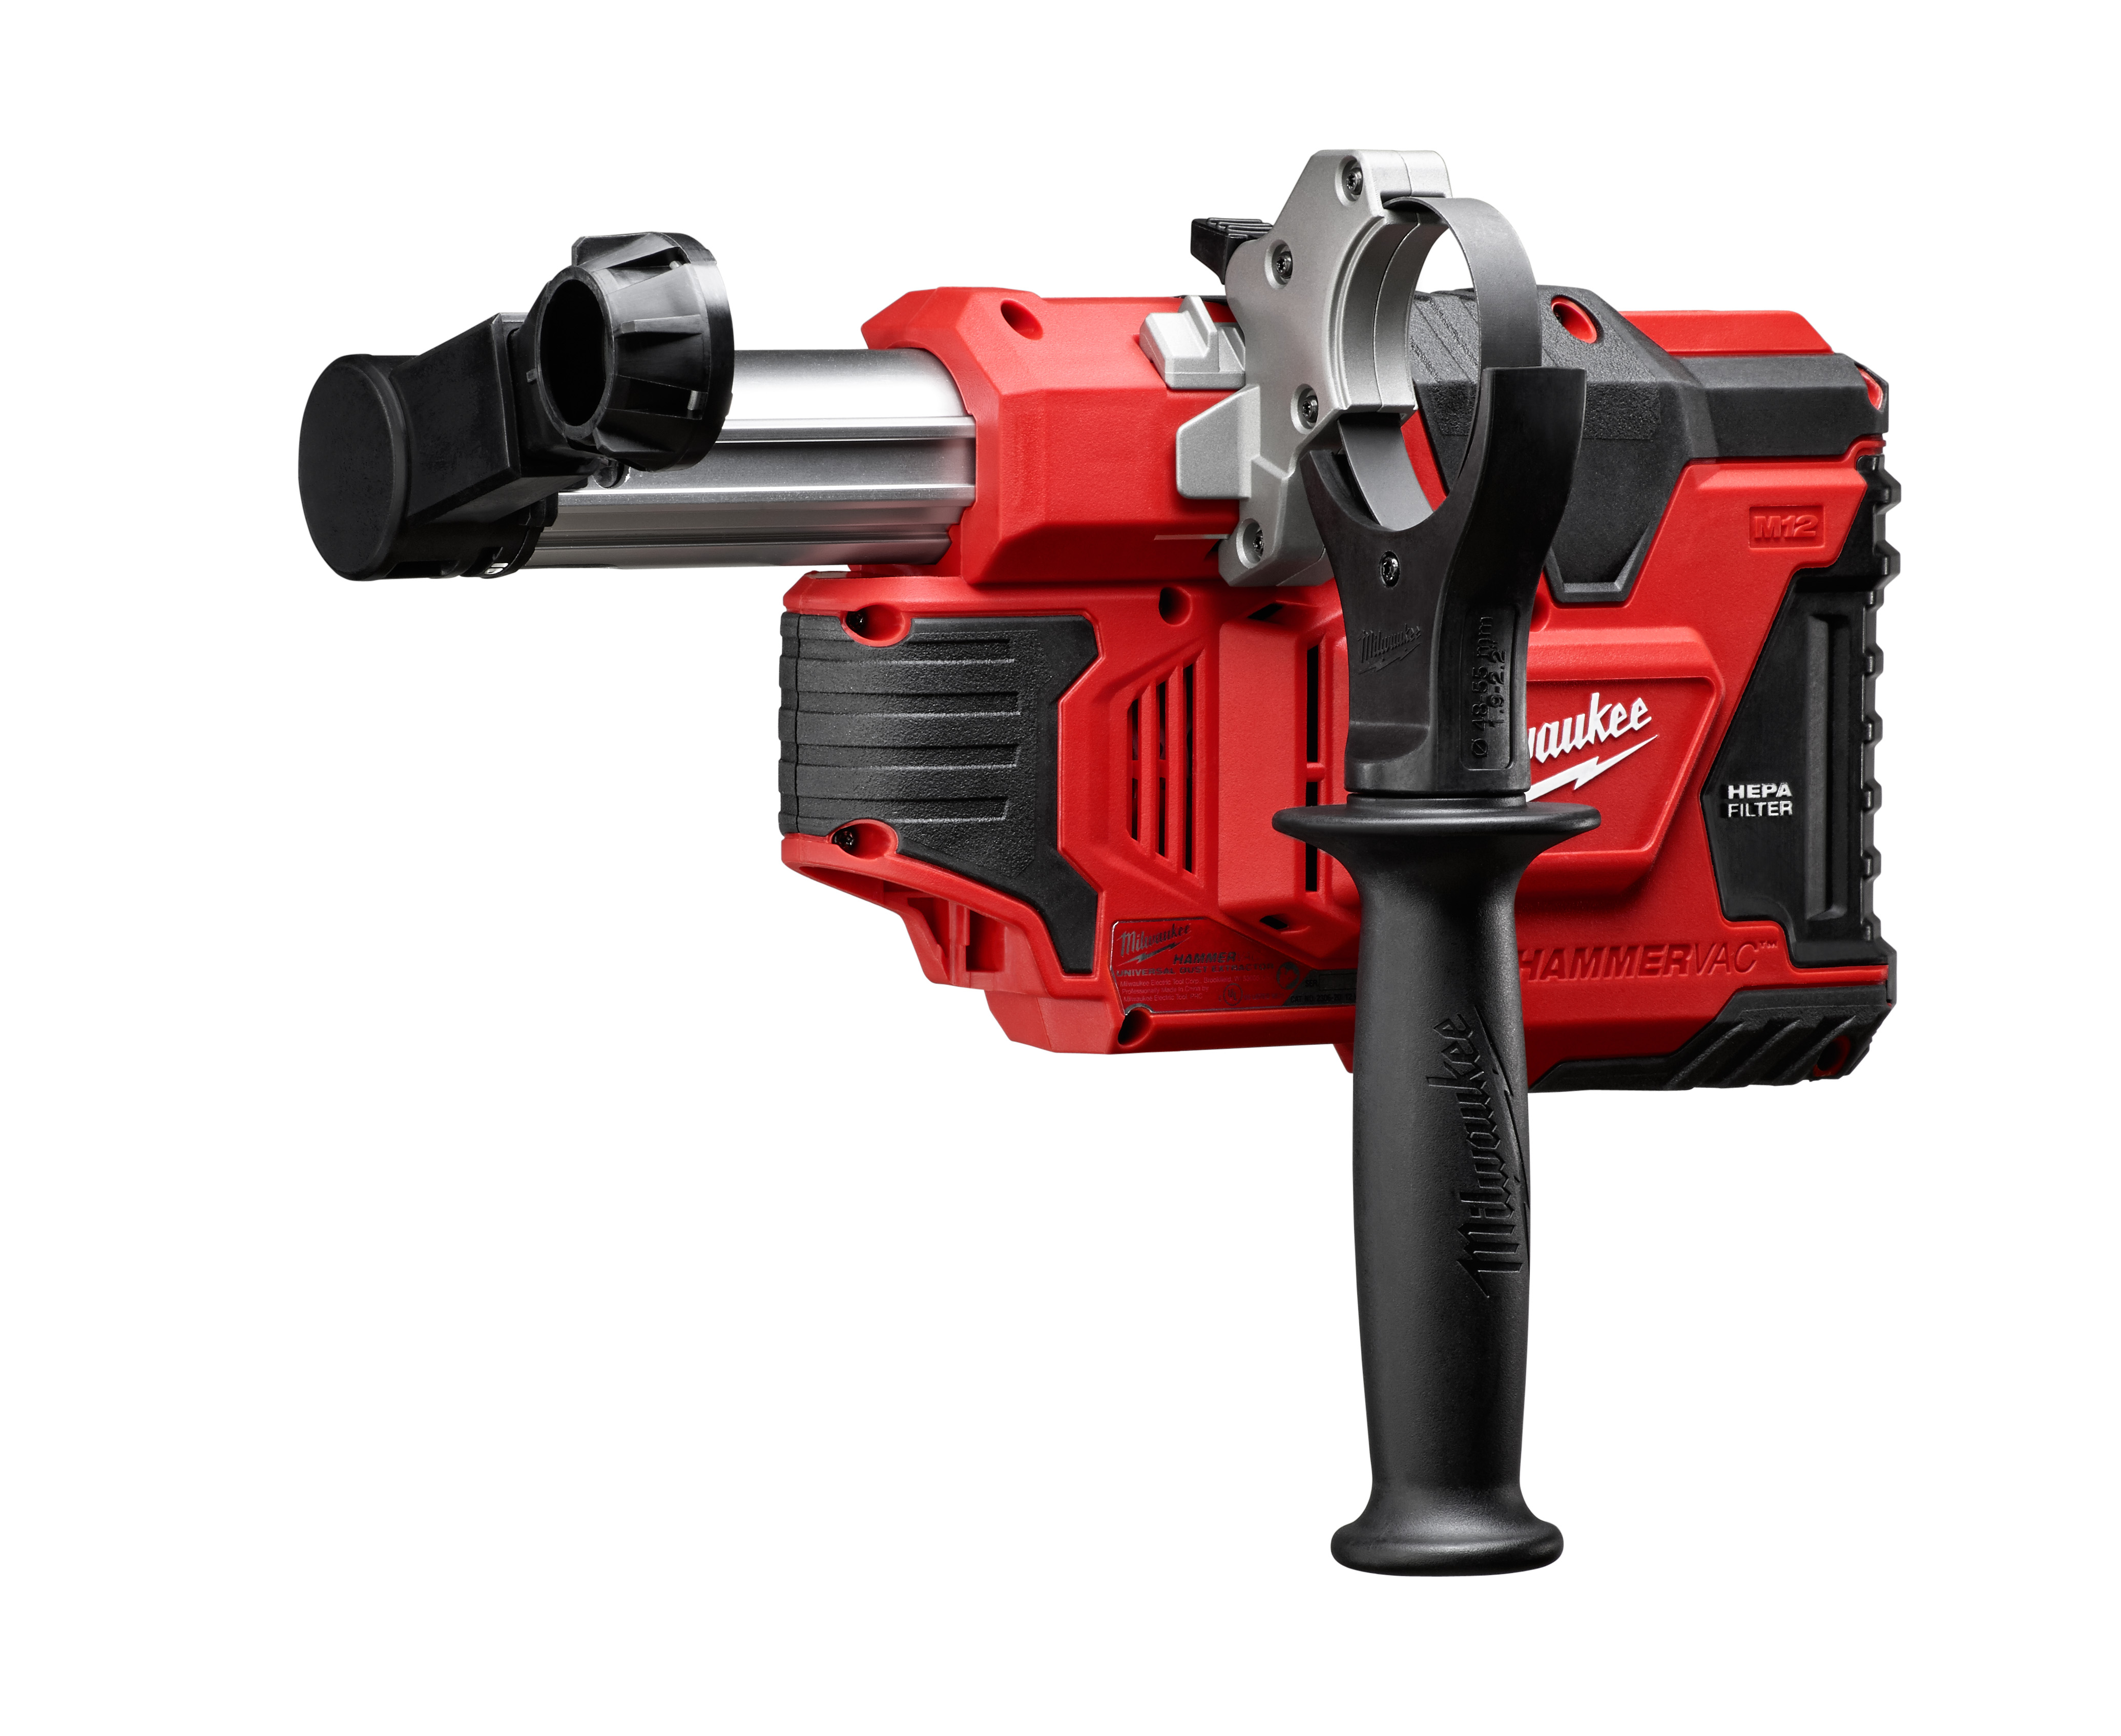 Milwaukee® M12™ 2306-20 HAMMERVAC™ Universal Dust Extractor, For Use With SDS-Max® Rotary Hammers, 12 V Voltage, Lithium-Ion Battery, Metal/Plastic/Rubber Overmold